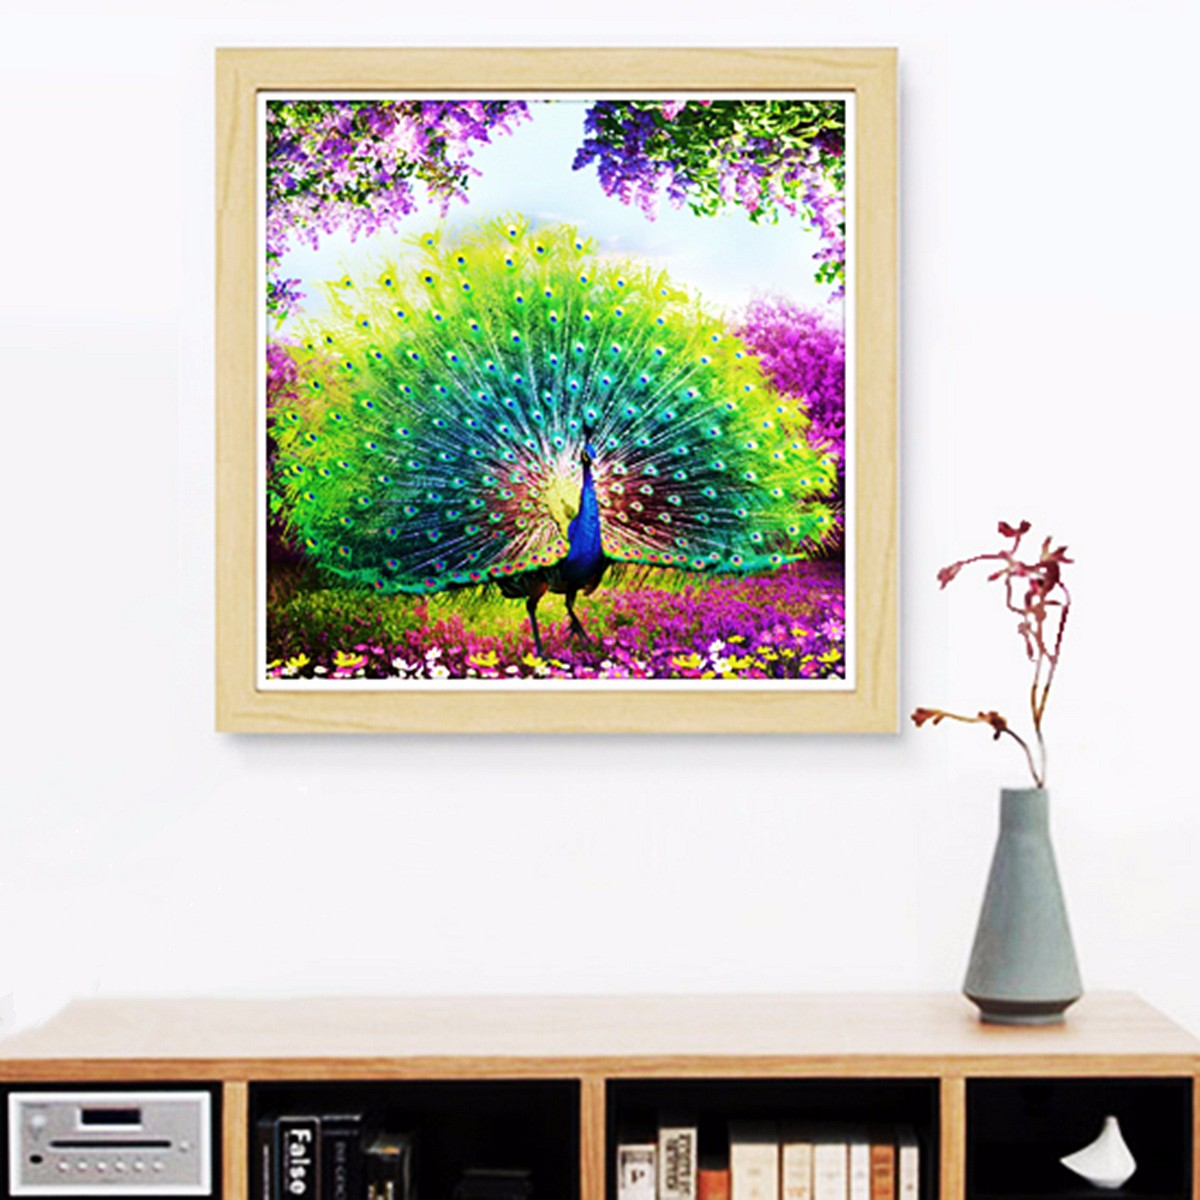 Diy 5d diamond embroidery painting flower peacock mosaic for Home decor 5d